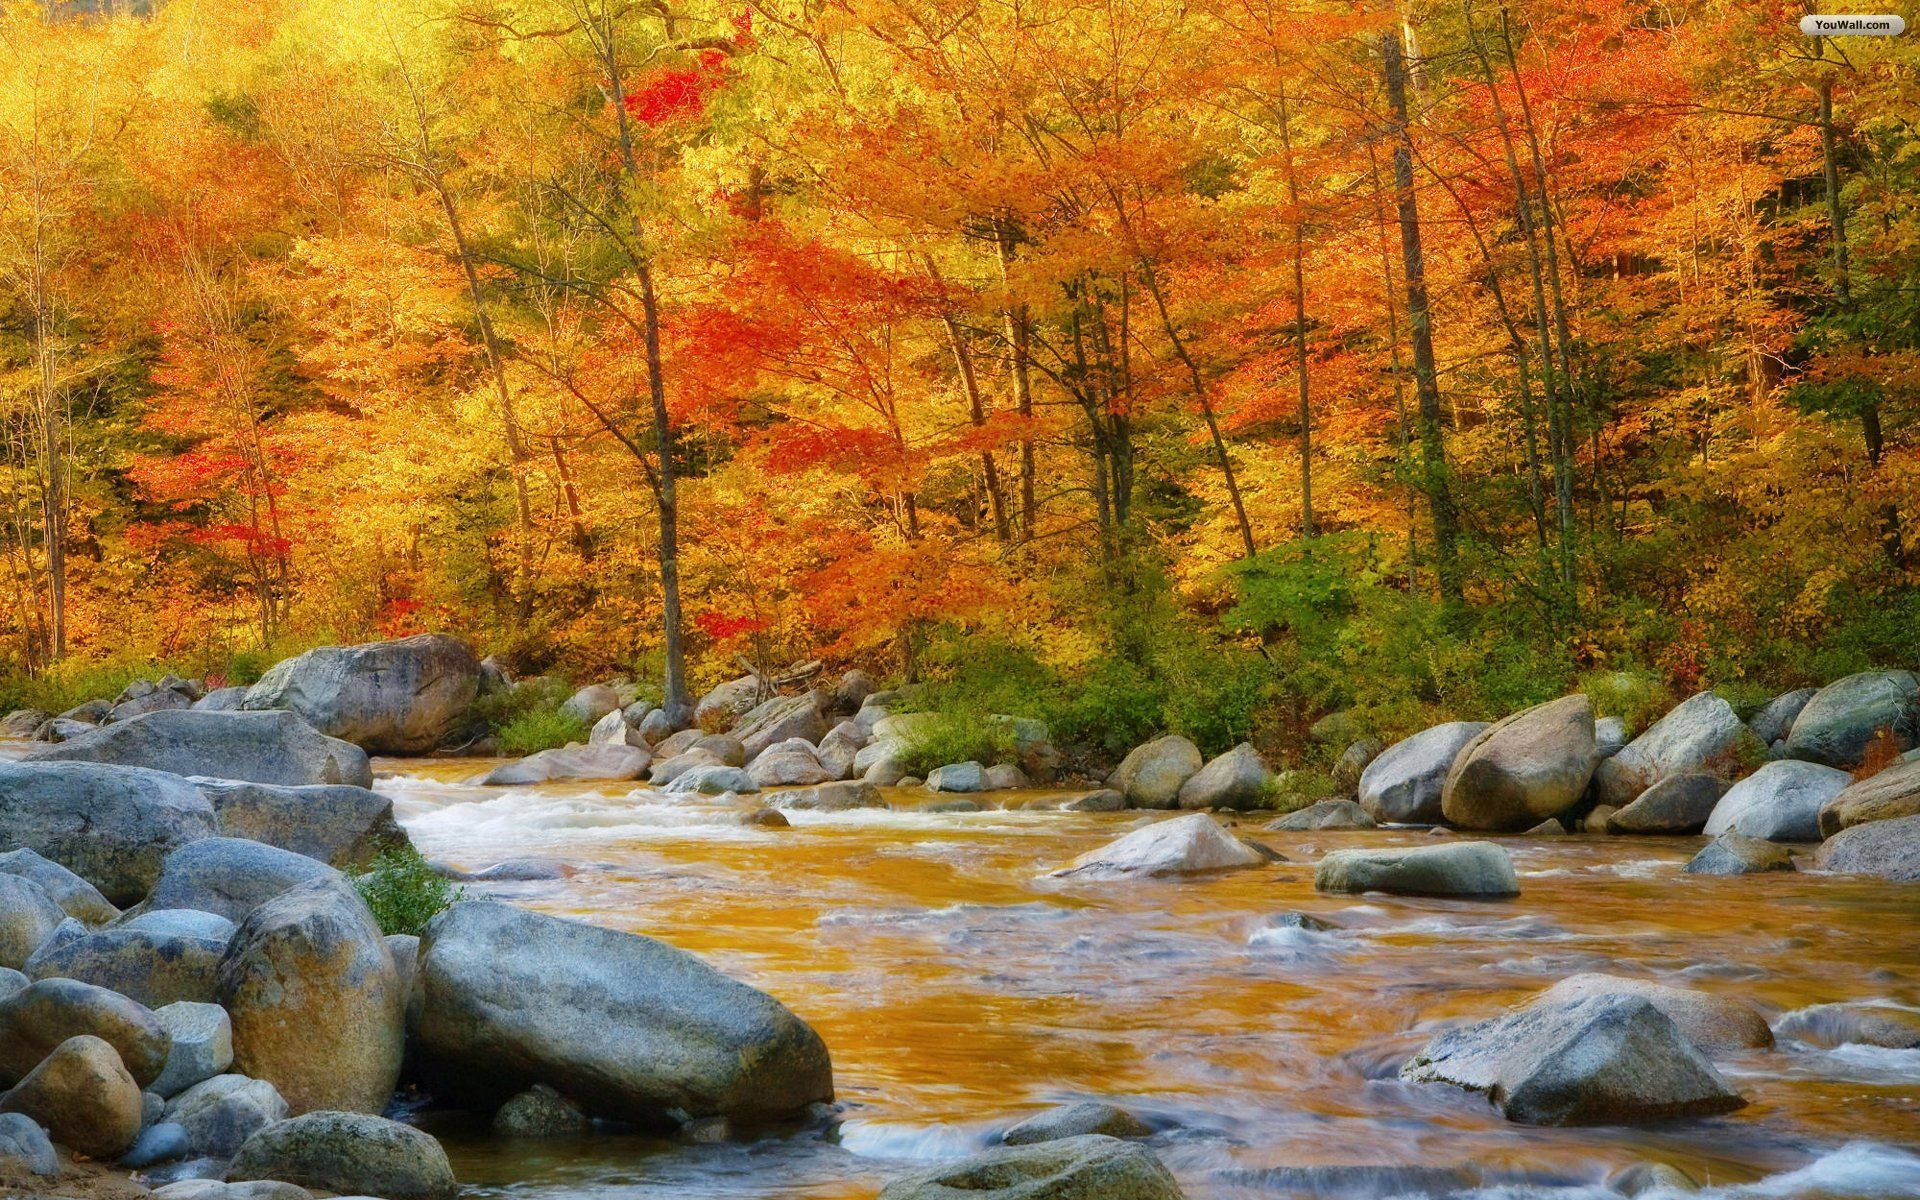 New Hampshire Autumn   beautiful The Cozy Autumn Fall 1920x1200